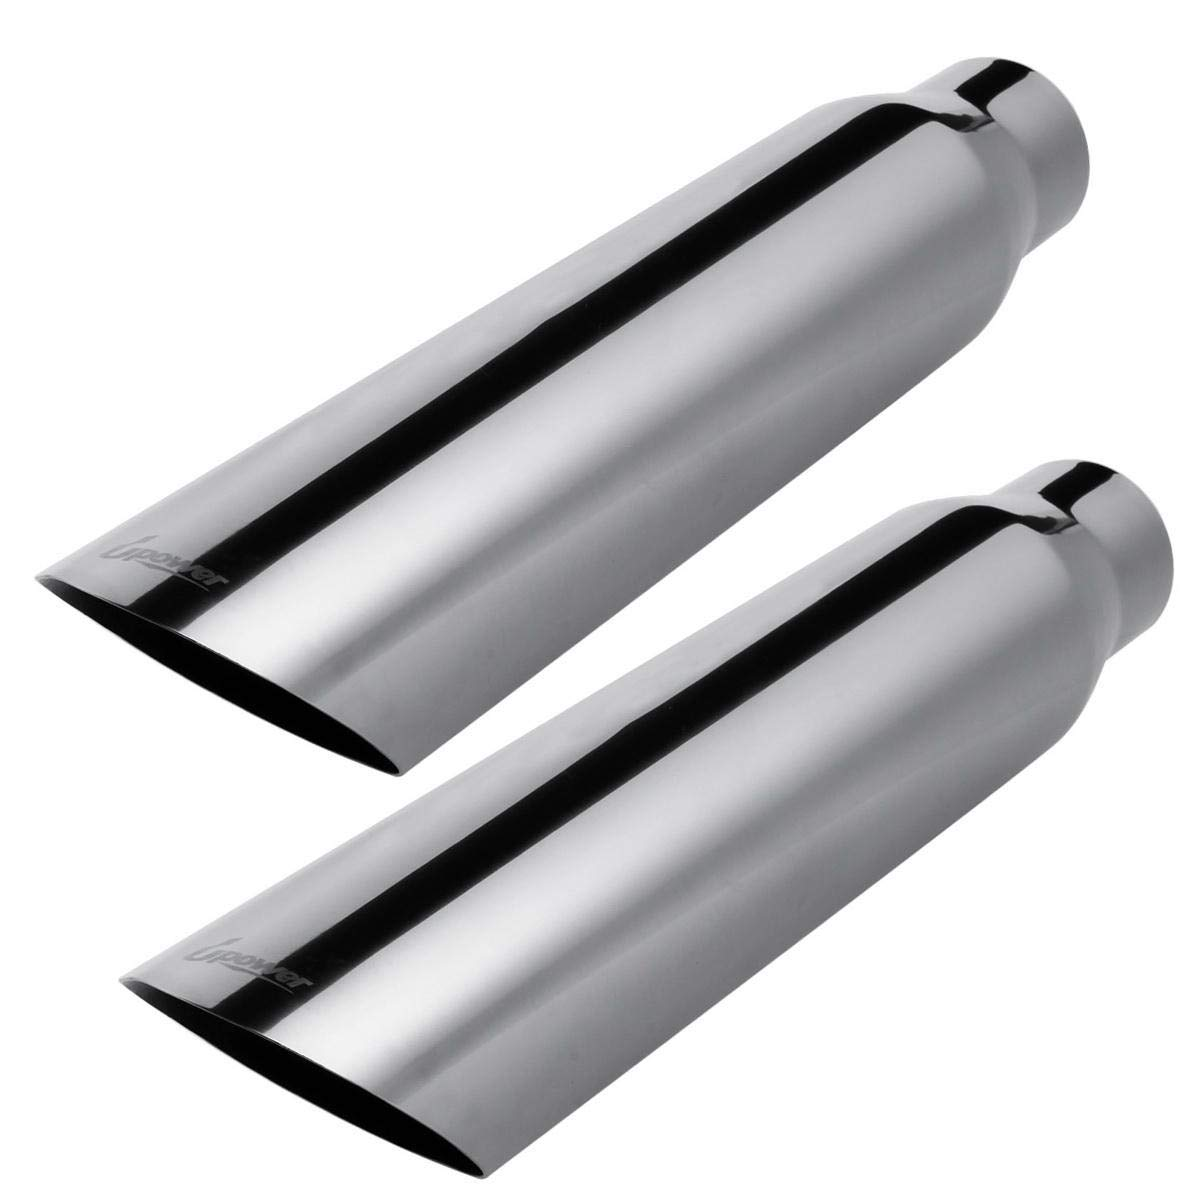 """2 PCS Universal Trucks Car 2.5"""" to 3.5"""" Exhaust Tip 18"""" Long Stainless Steel Weld On Exhaust Tailpipe Tips"""